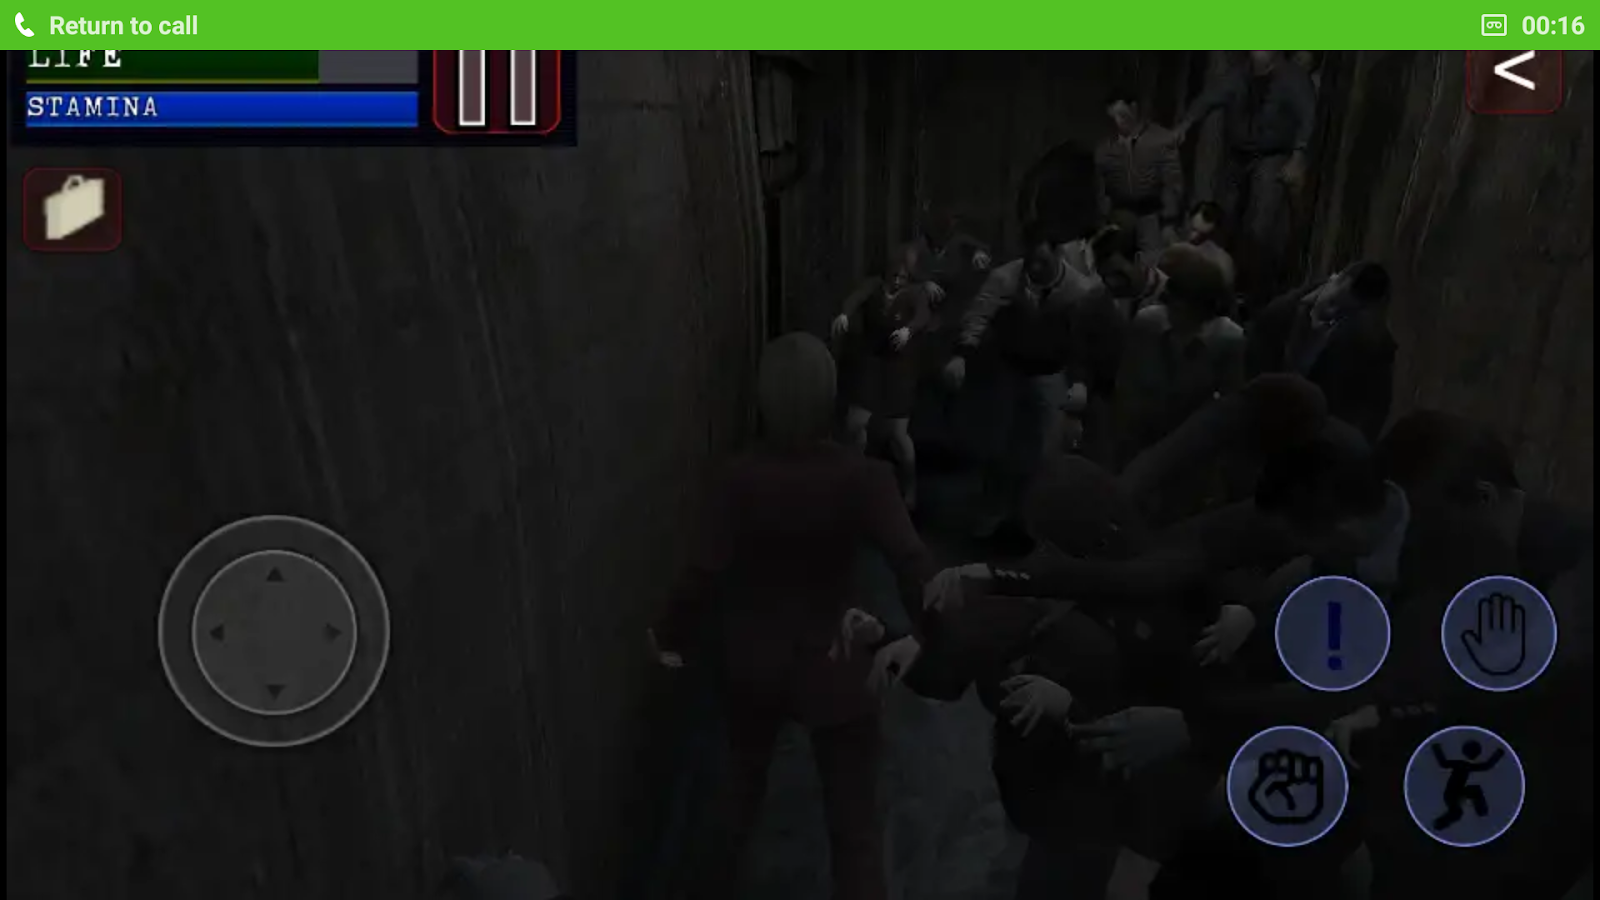 resident evil 4 wii dolphin emulator android